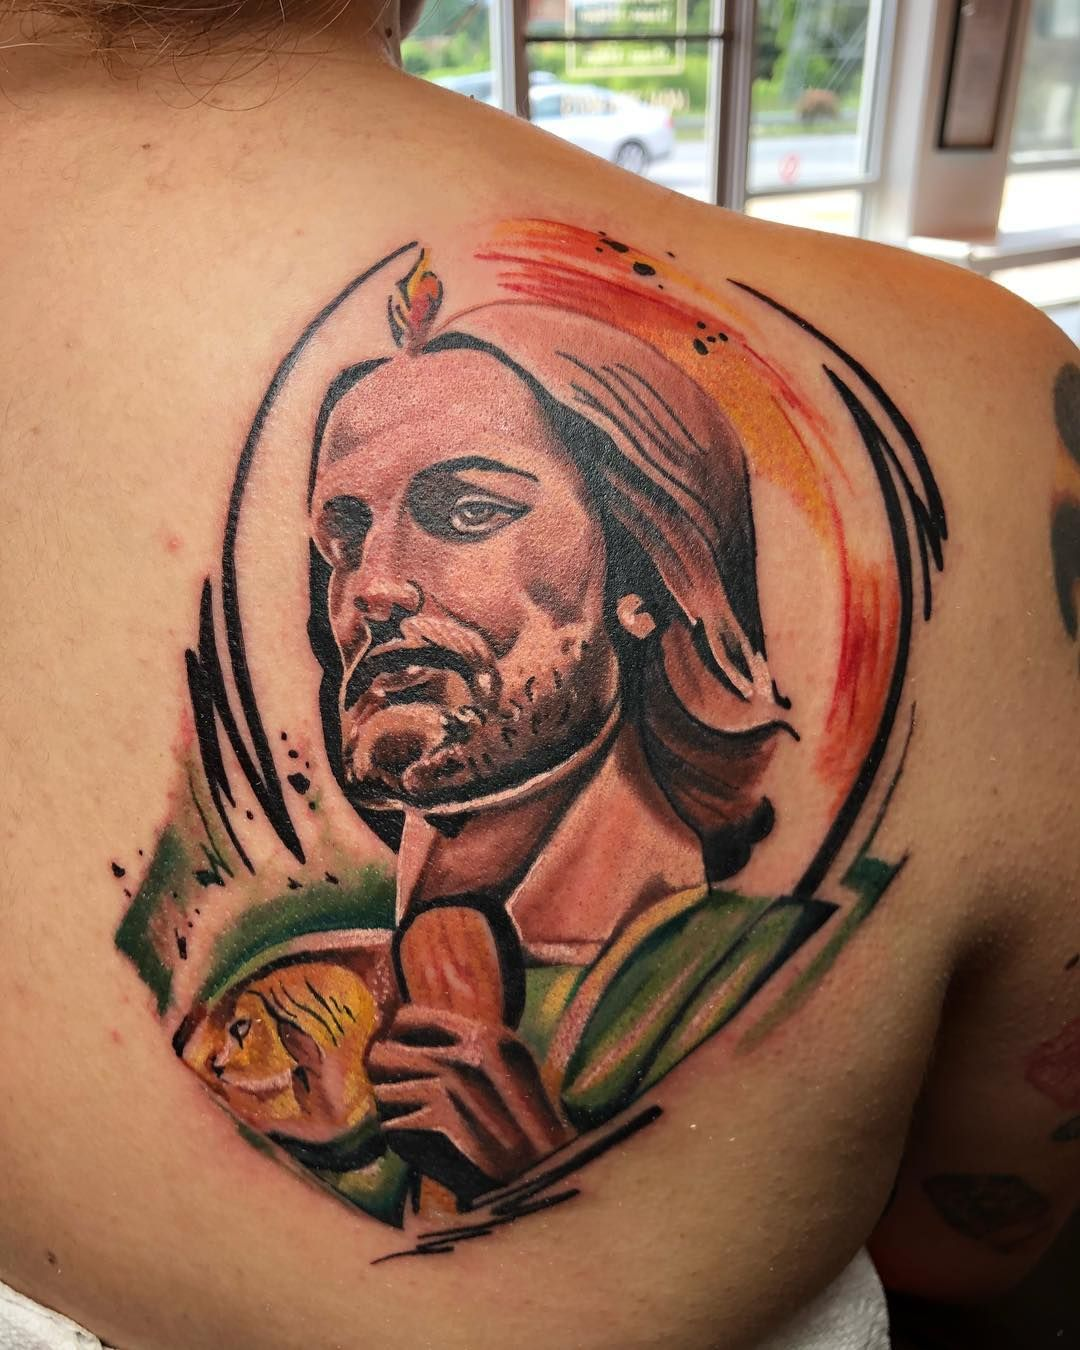 San Judas Tadeo By Sysko Tattoofiesta Judas Tadeo Tattoos